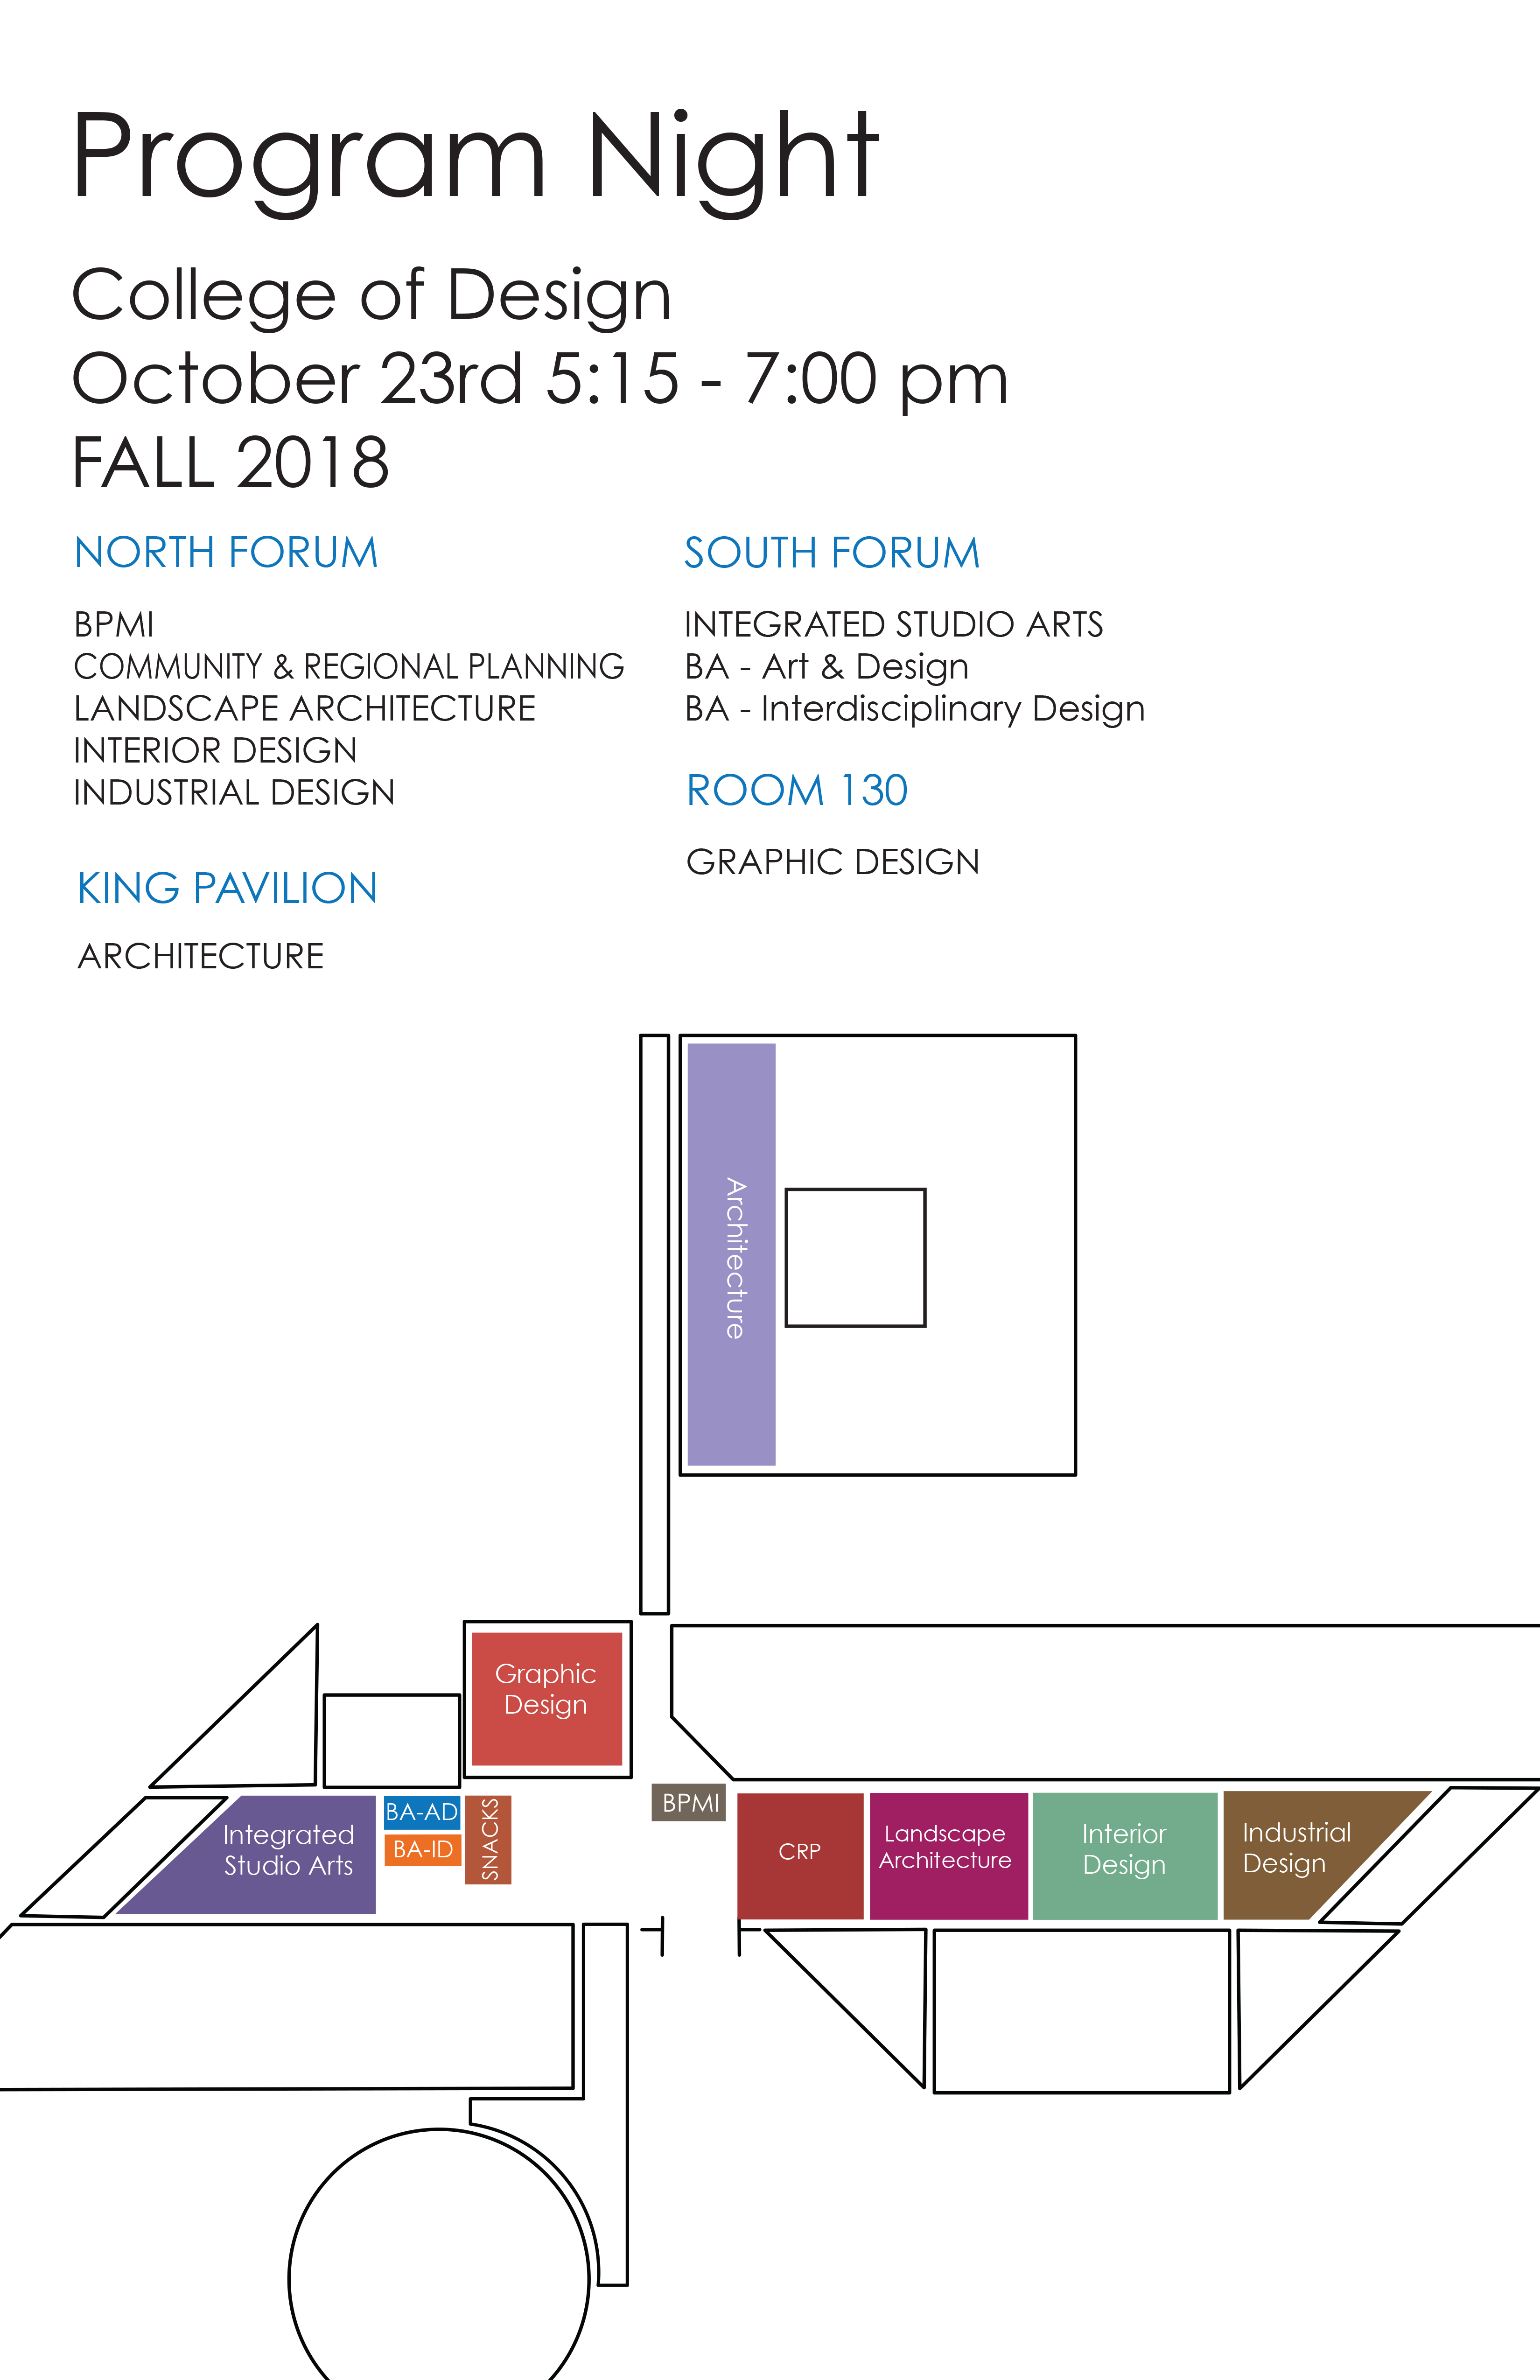 Program Night Fall 2018